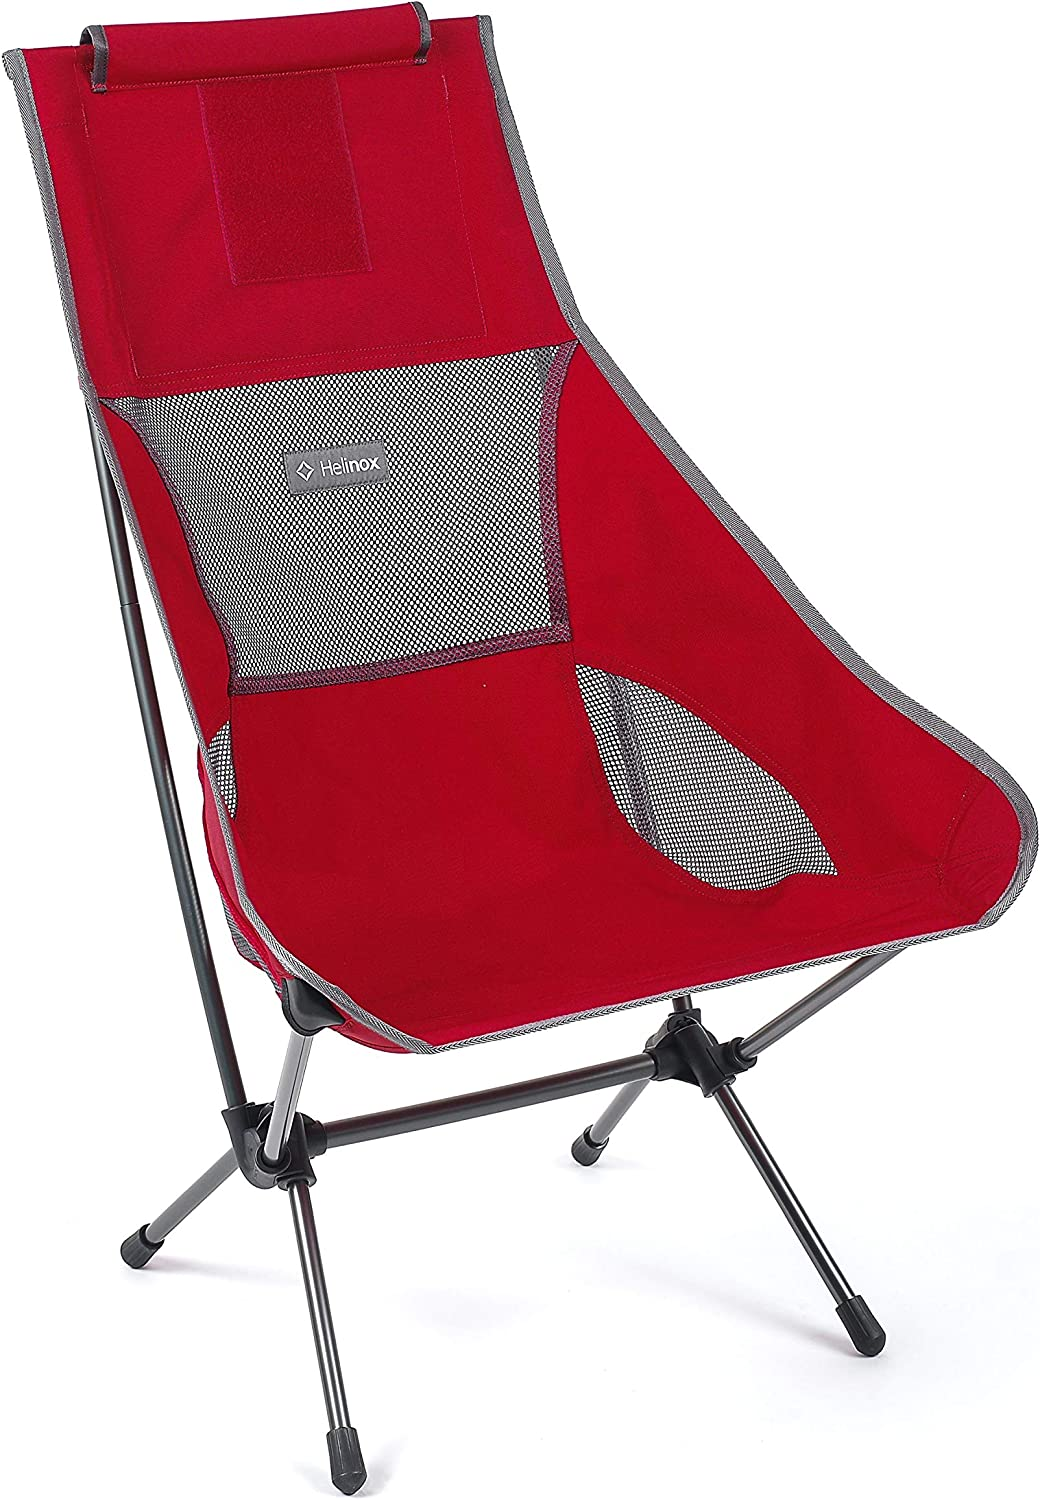 Helinox Chair favorite Two Ultralight Complete Free Shipping Collapsible Camping High-Back Cha